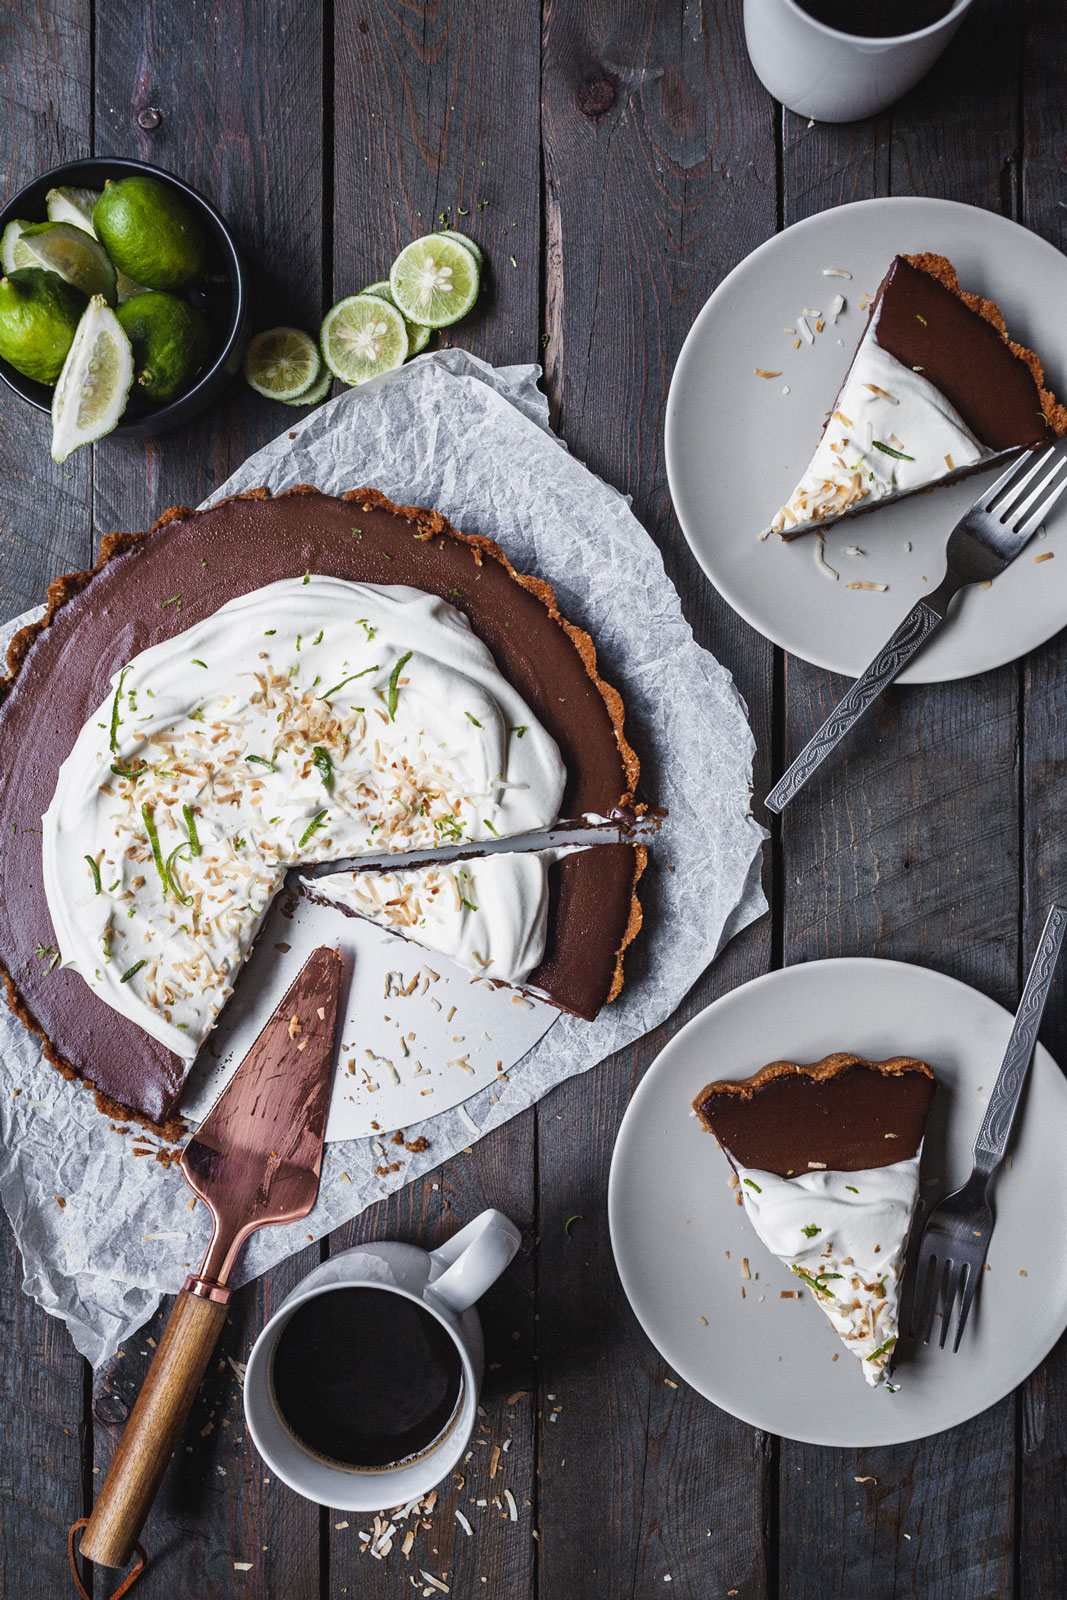 Chocolate Lime Tart With A Ginger Snap Crust